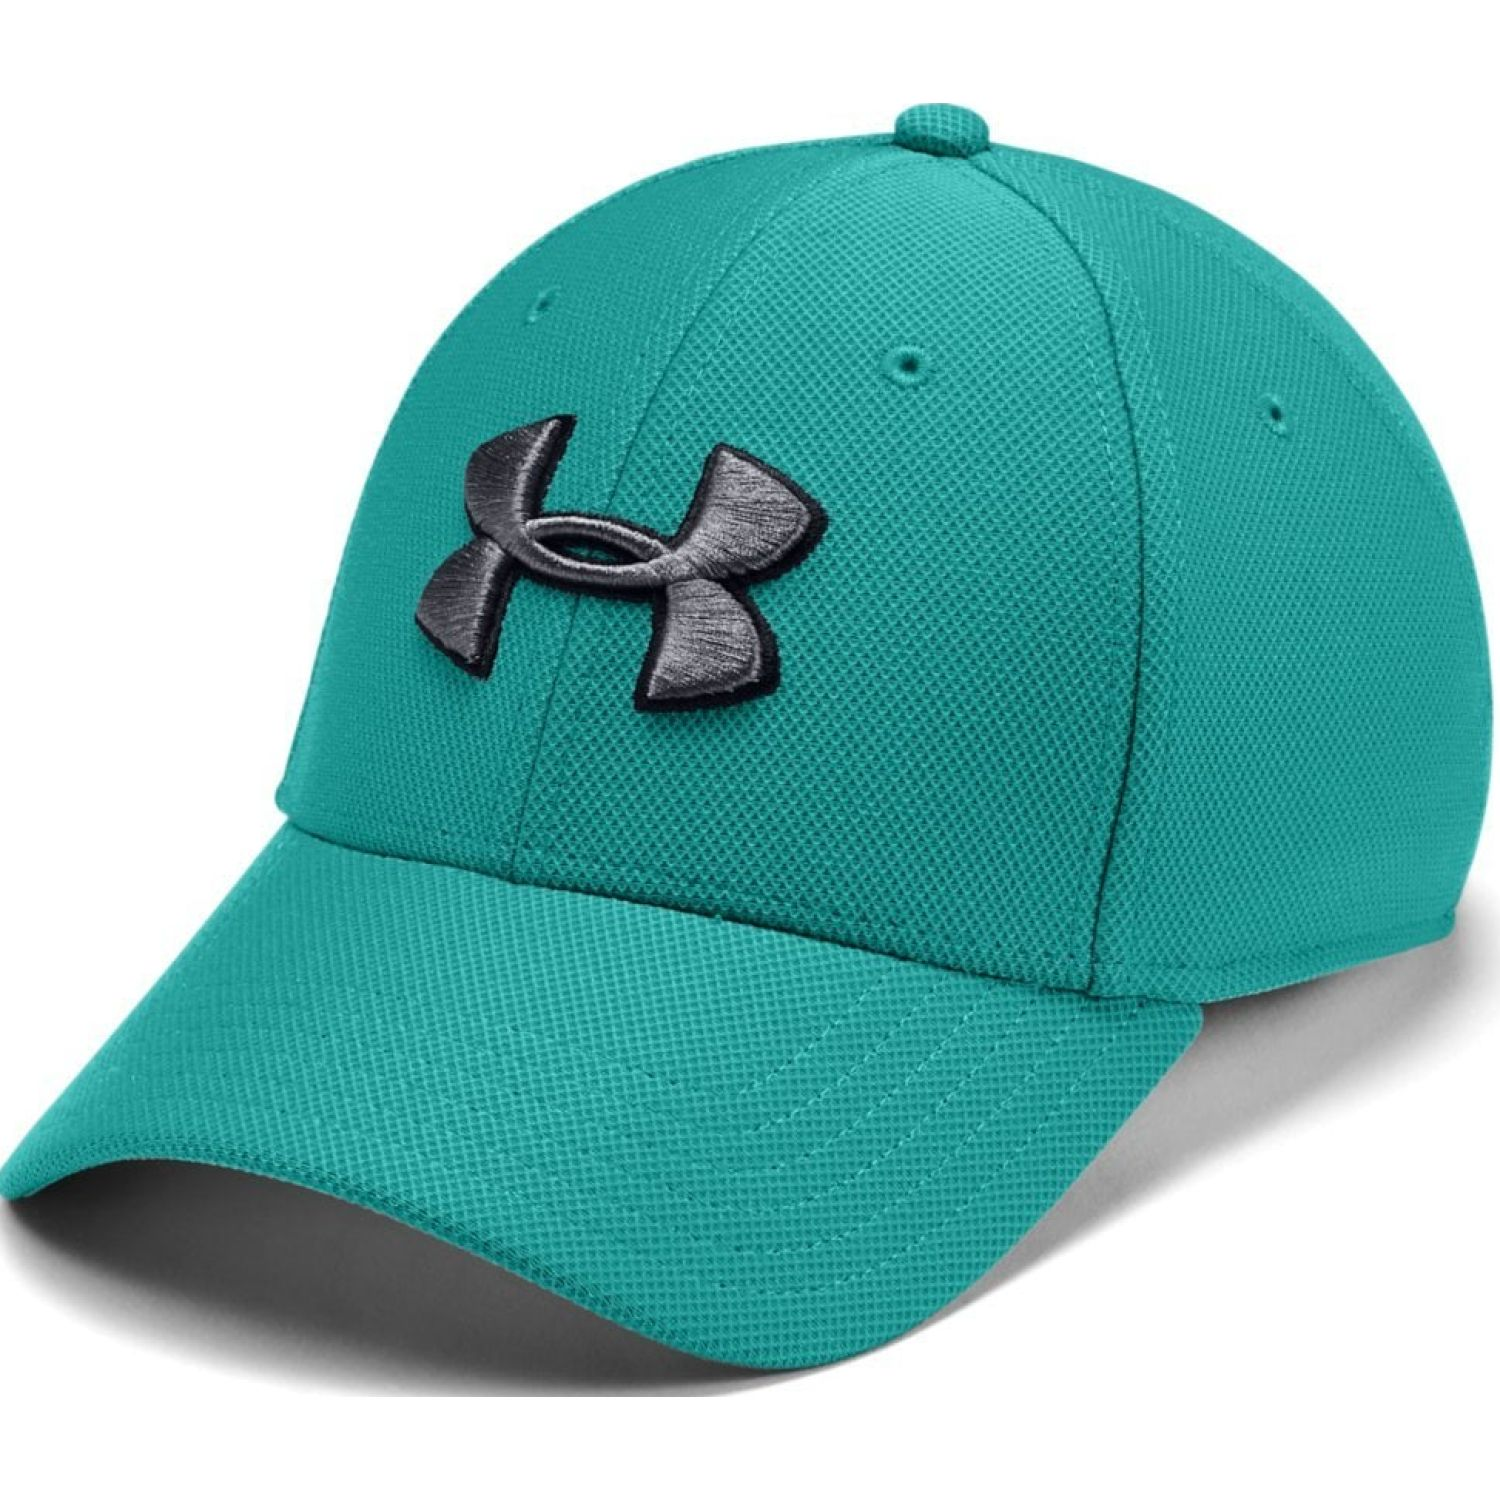 Under Armour Men's Blitzing 3.0 Cap Turquesa Gorros de Baseball